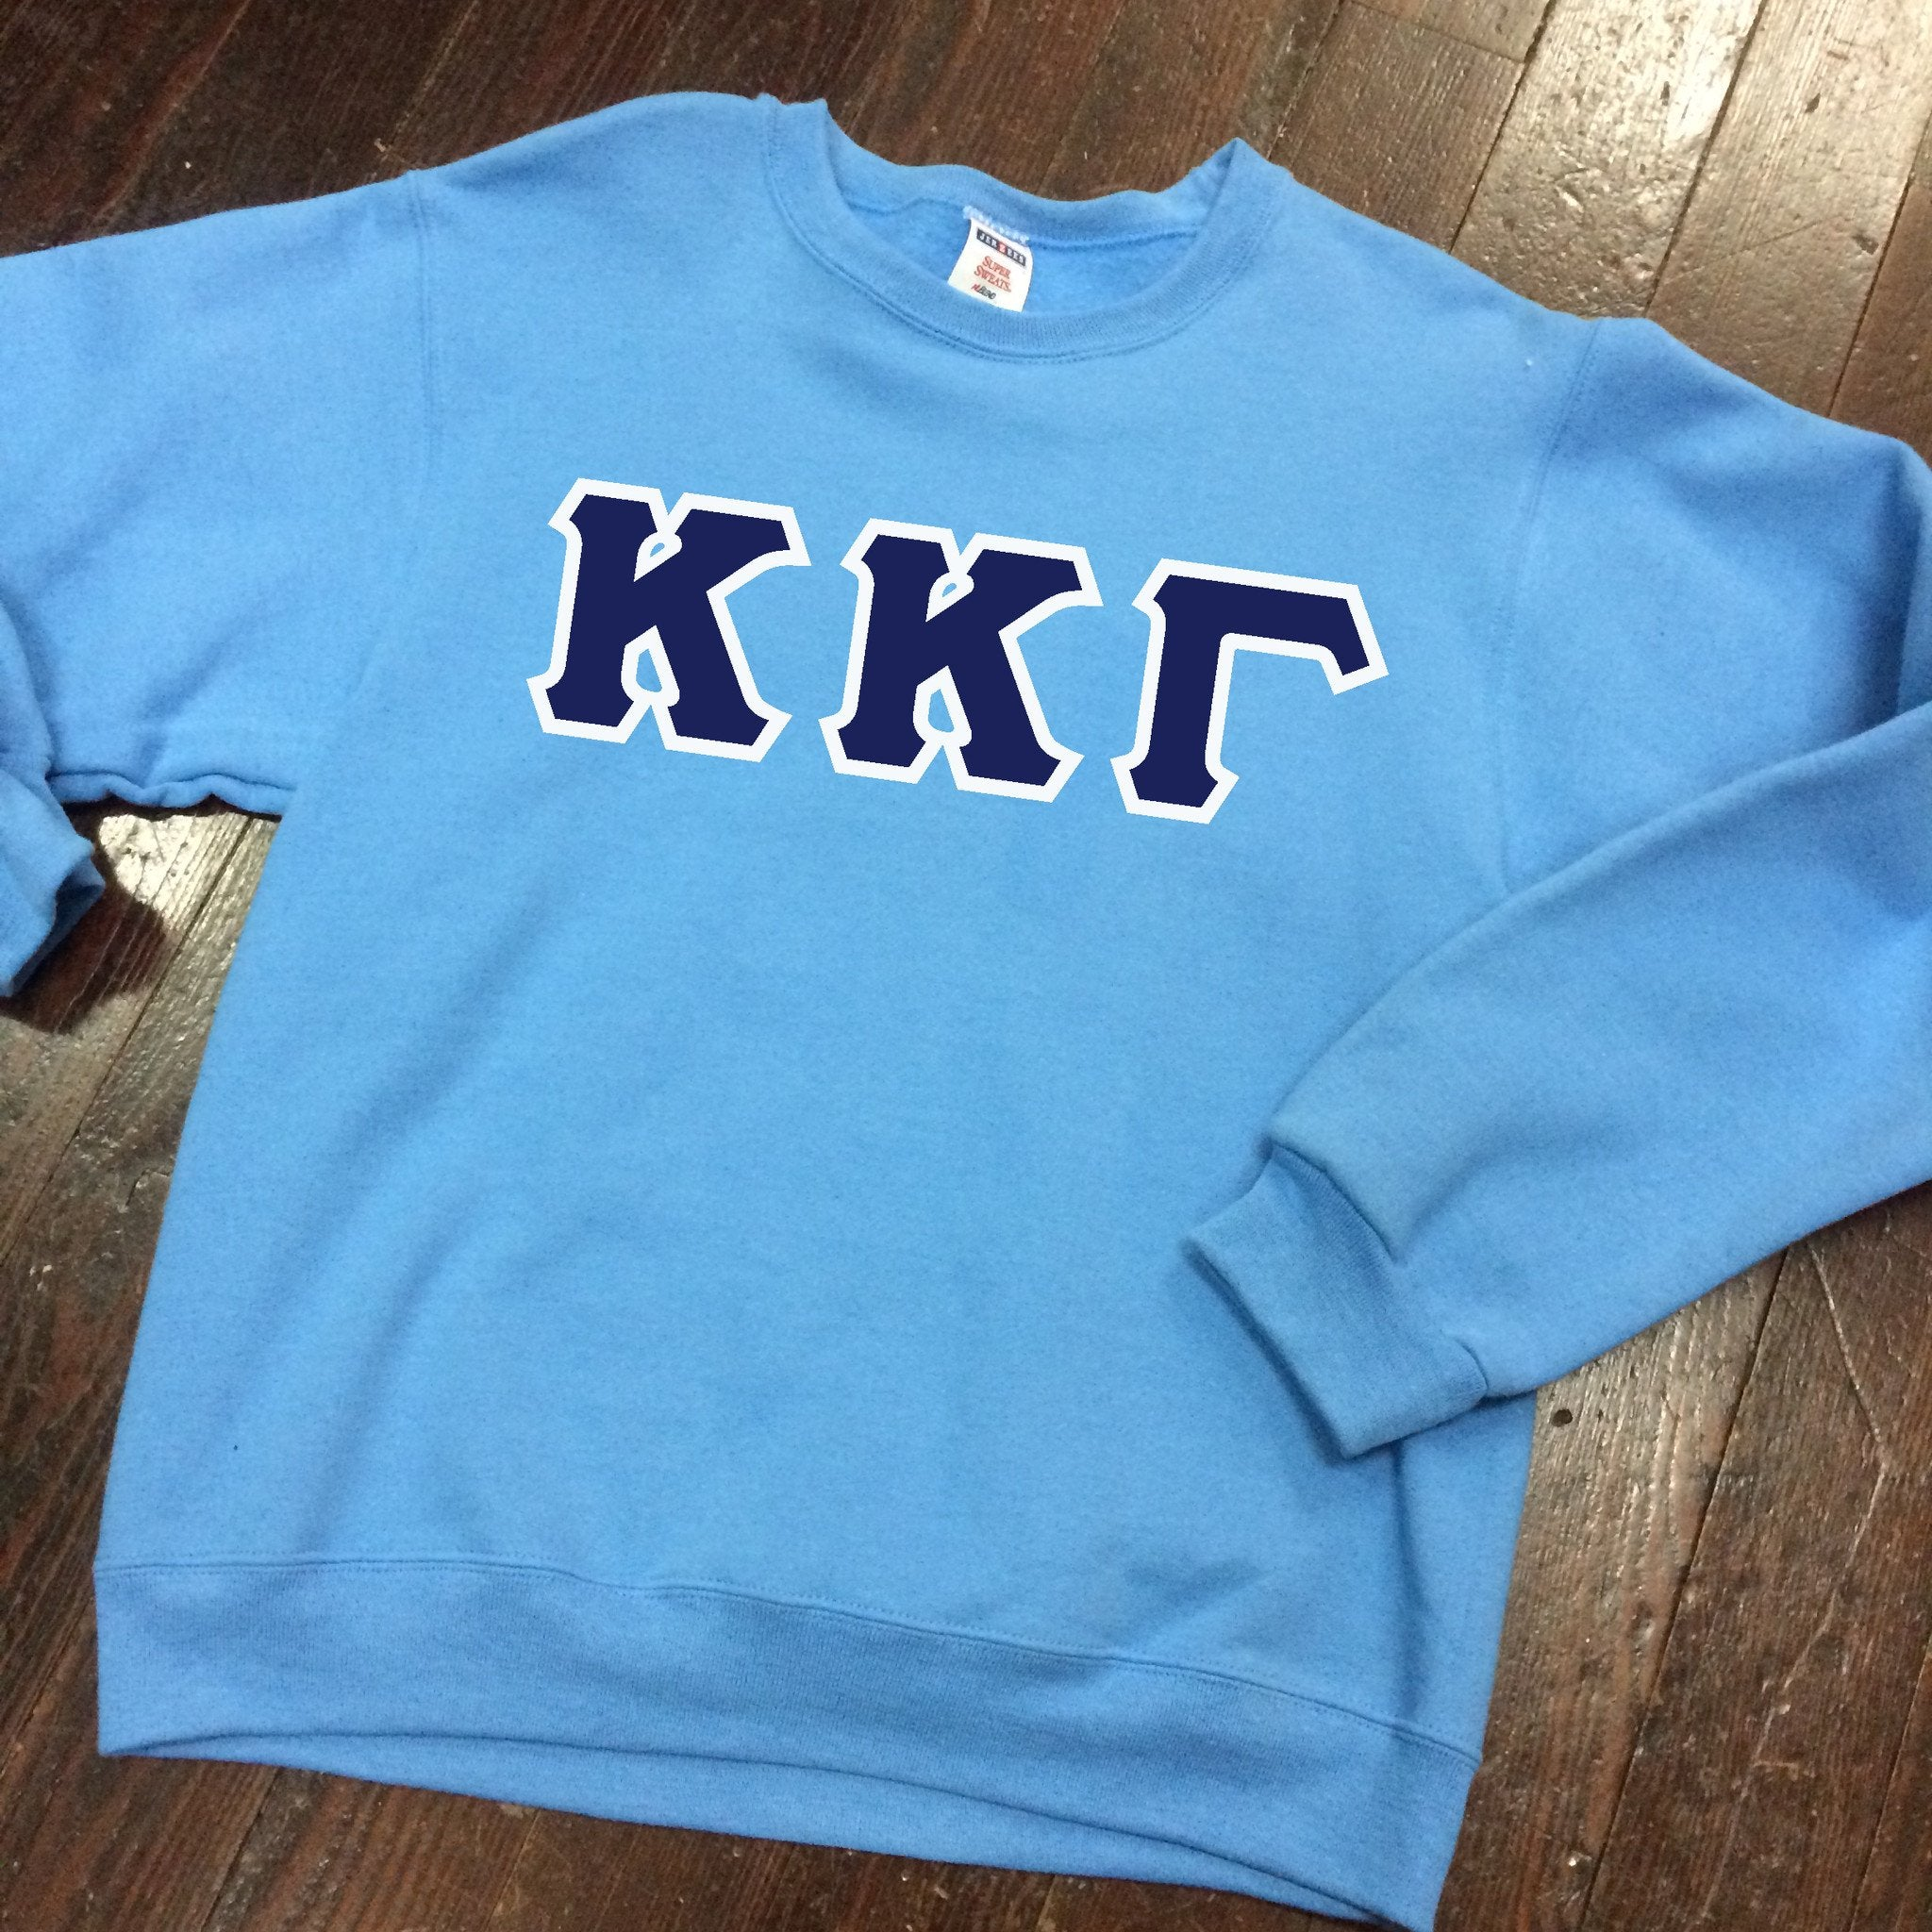 Sewn-Letter Crewneck Sweatshirt - Campus Connection - Campus Connection - 1